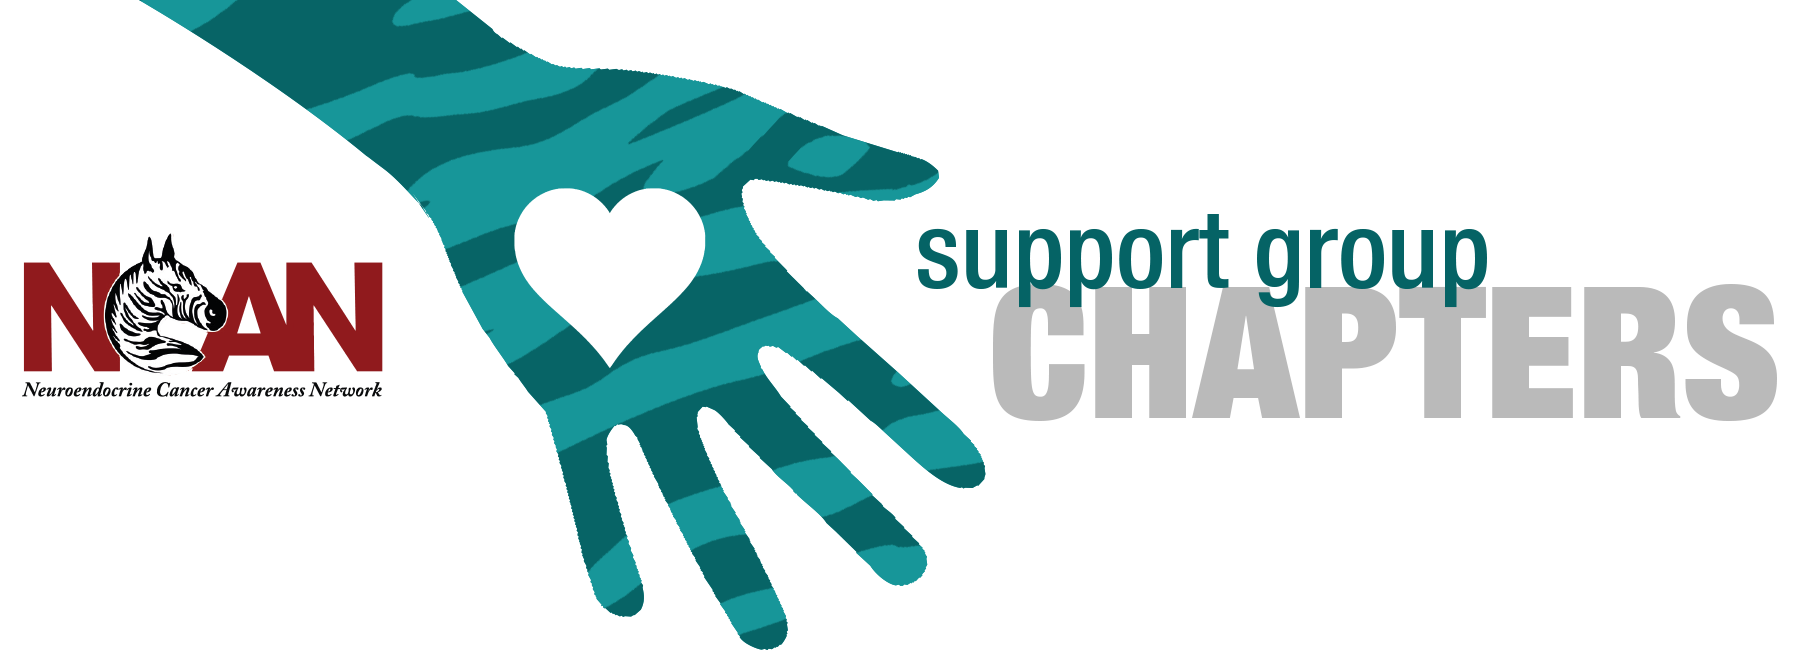 NCAN Support Group - Michigan Chapter